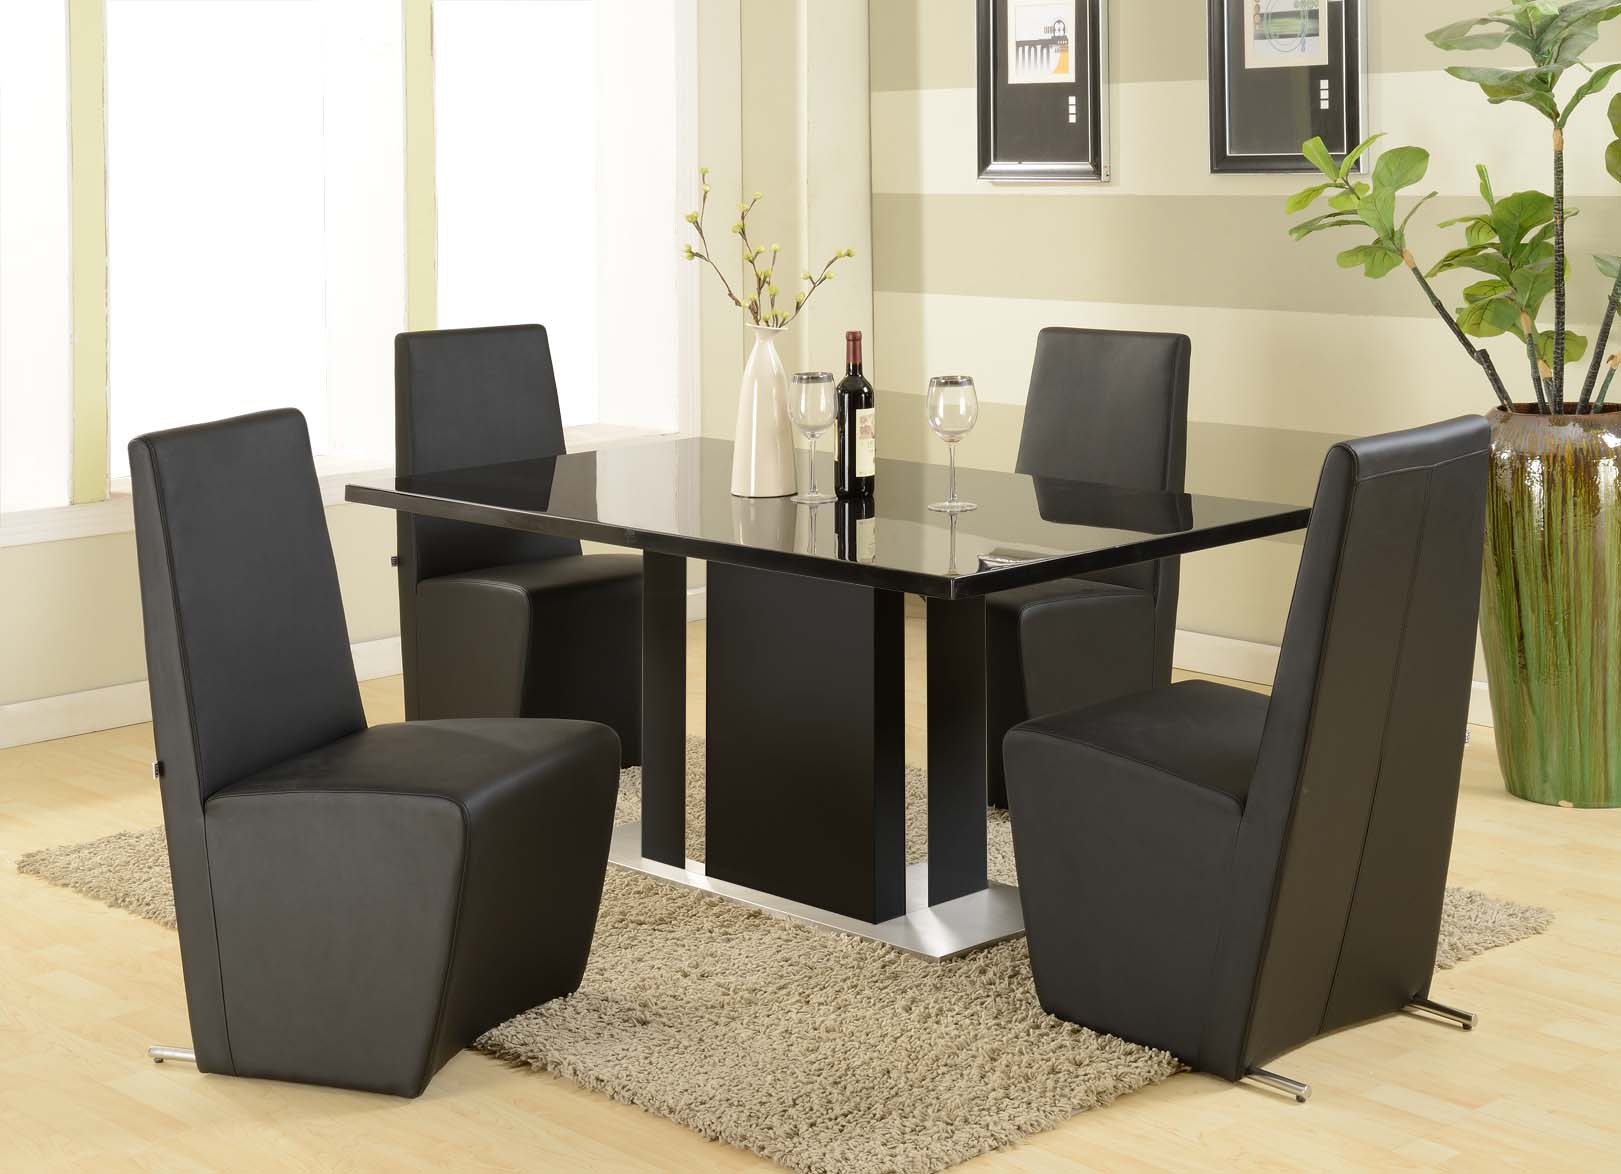 Modern furniture table home design roosa for Modern dining room table